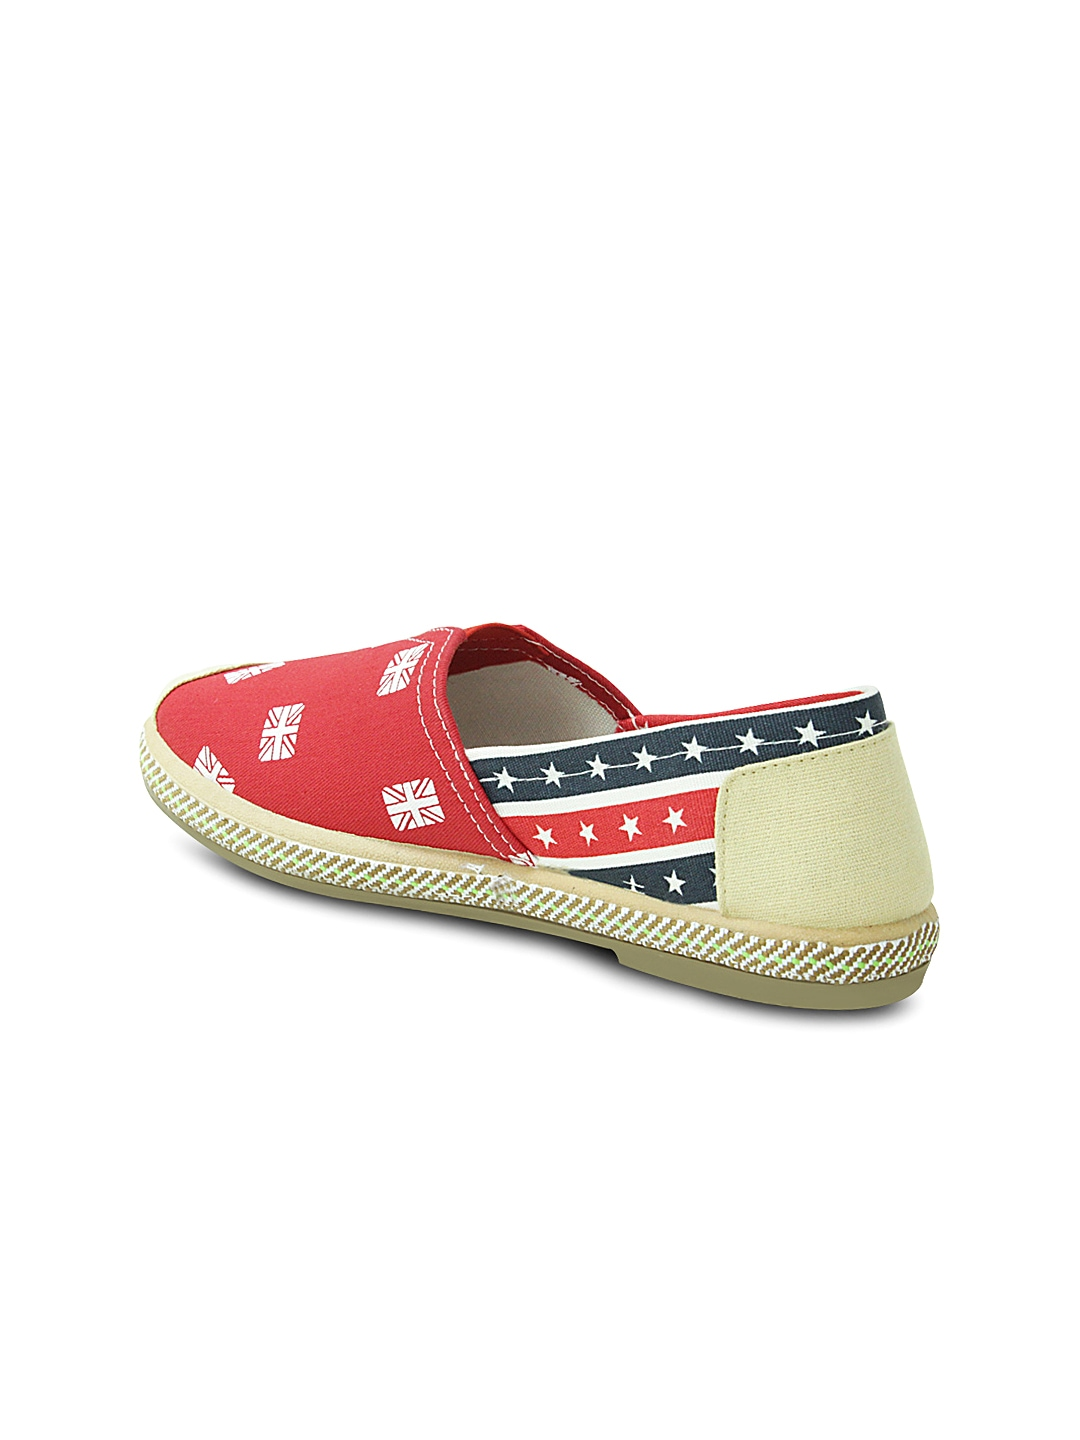 Printed Canvas Shoes Buy Online